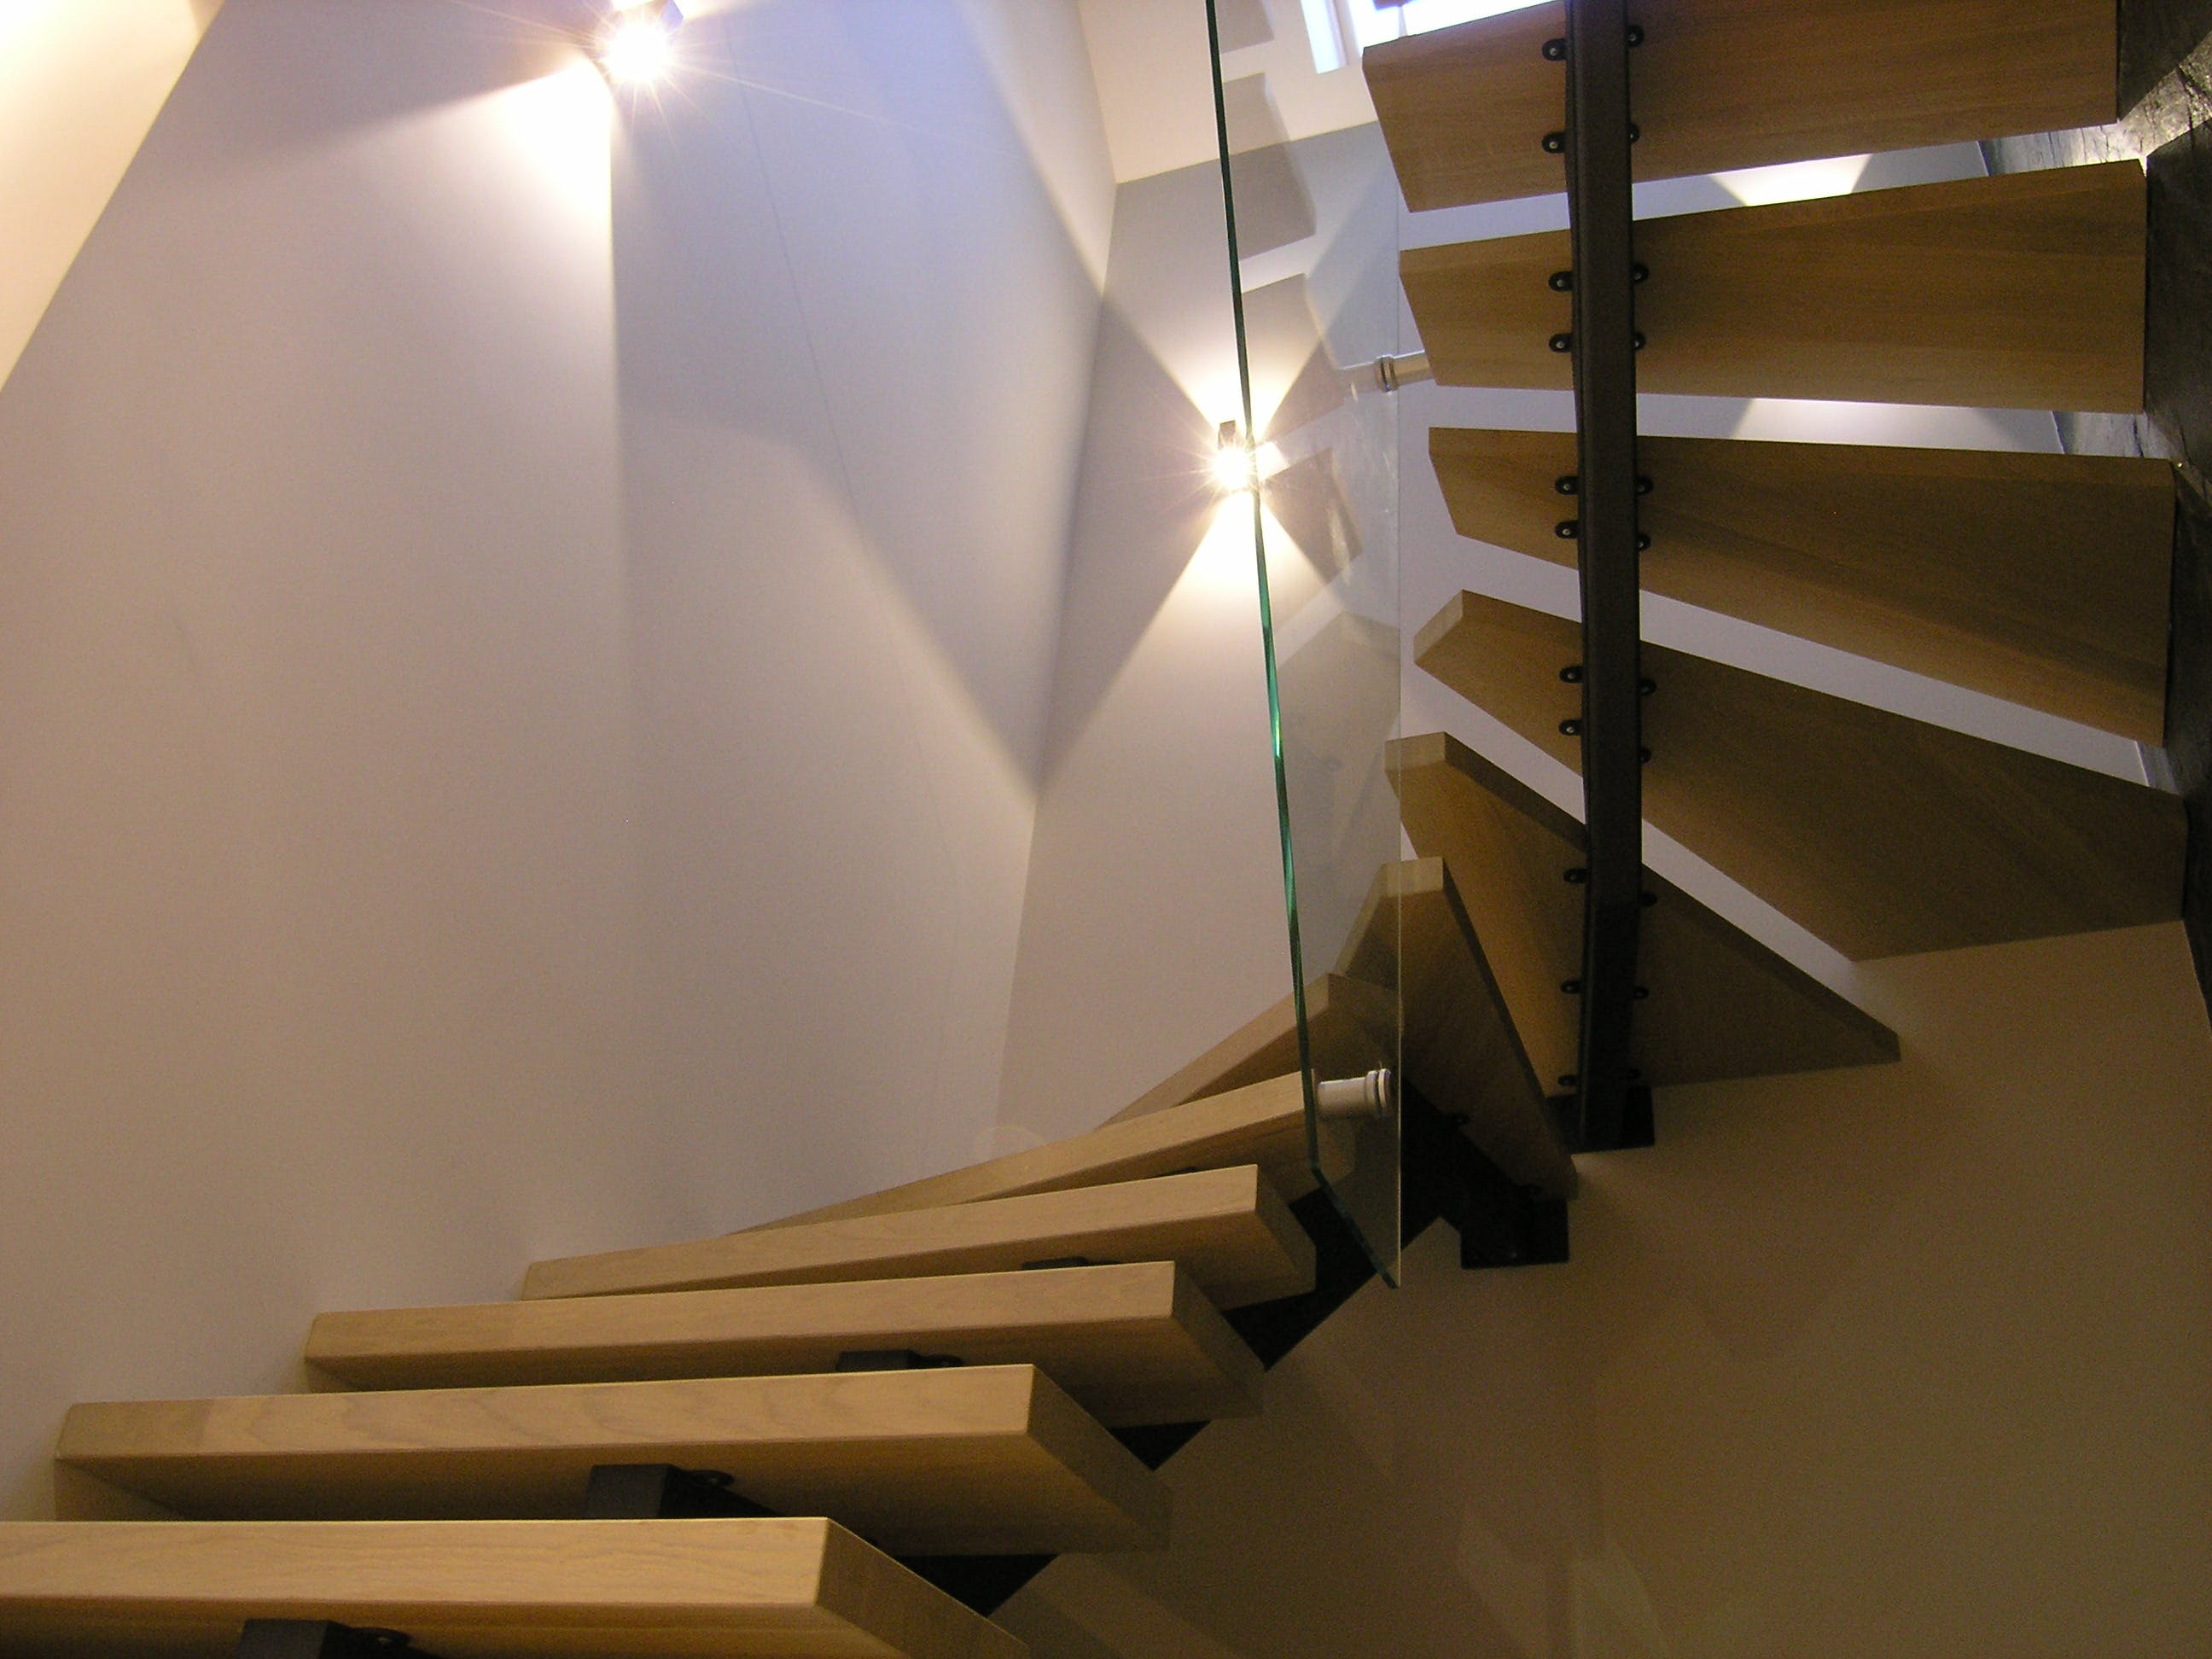 Free stock photo of stairs, light, space, interior